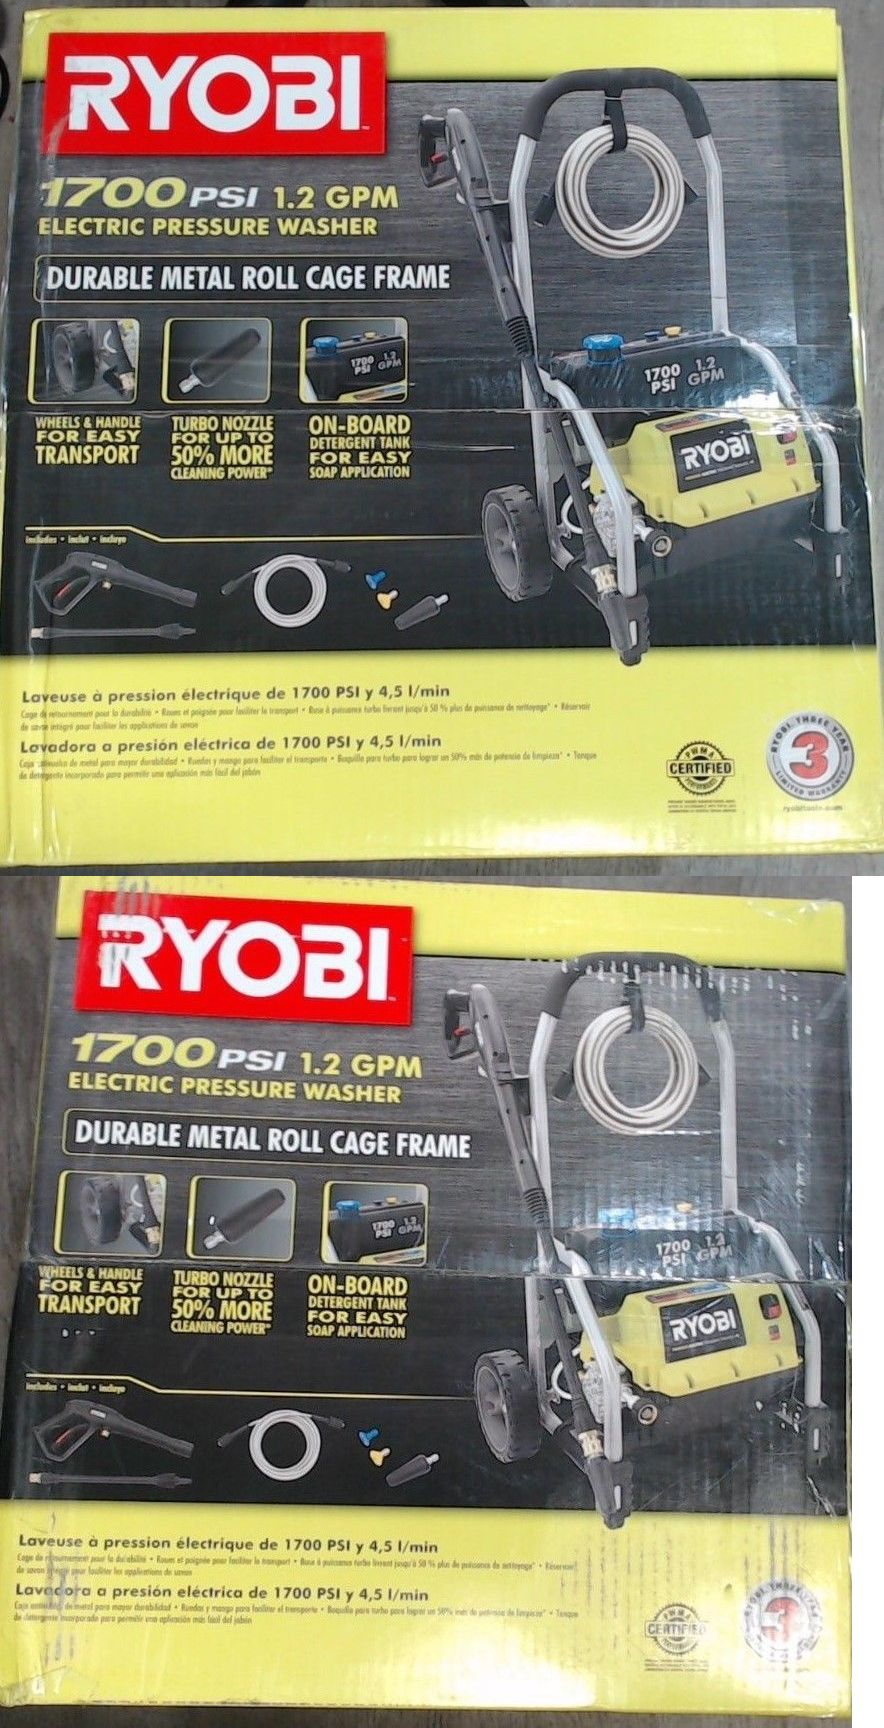 Tools 42346 Ryobi 1700 Psi 1 2 Gpm Electric Pressure Washer St 2190 Ry14122 It Now Only 148 On Ebay